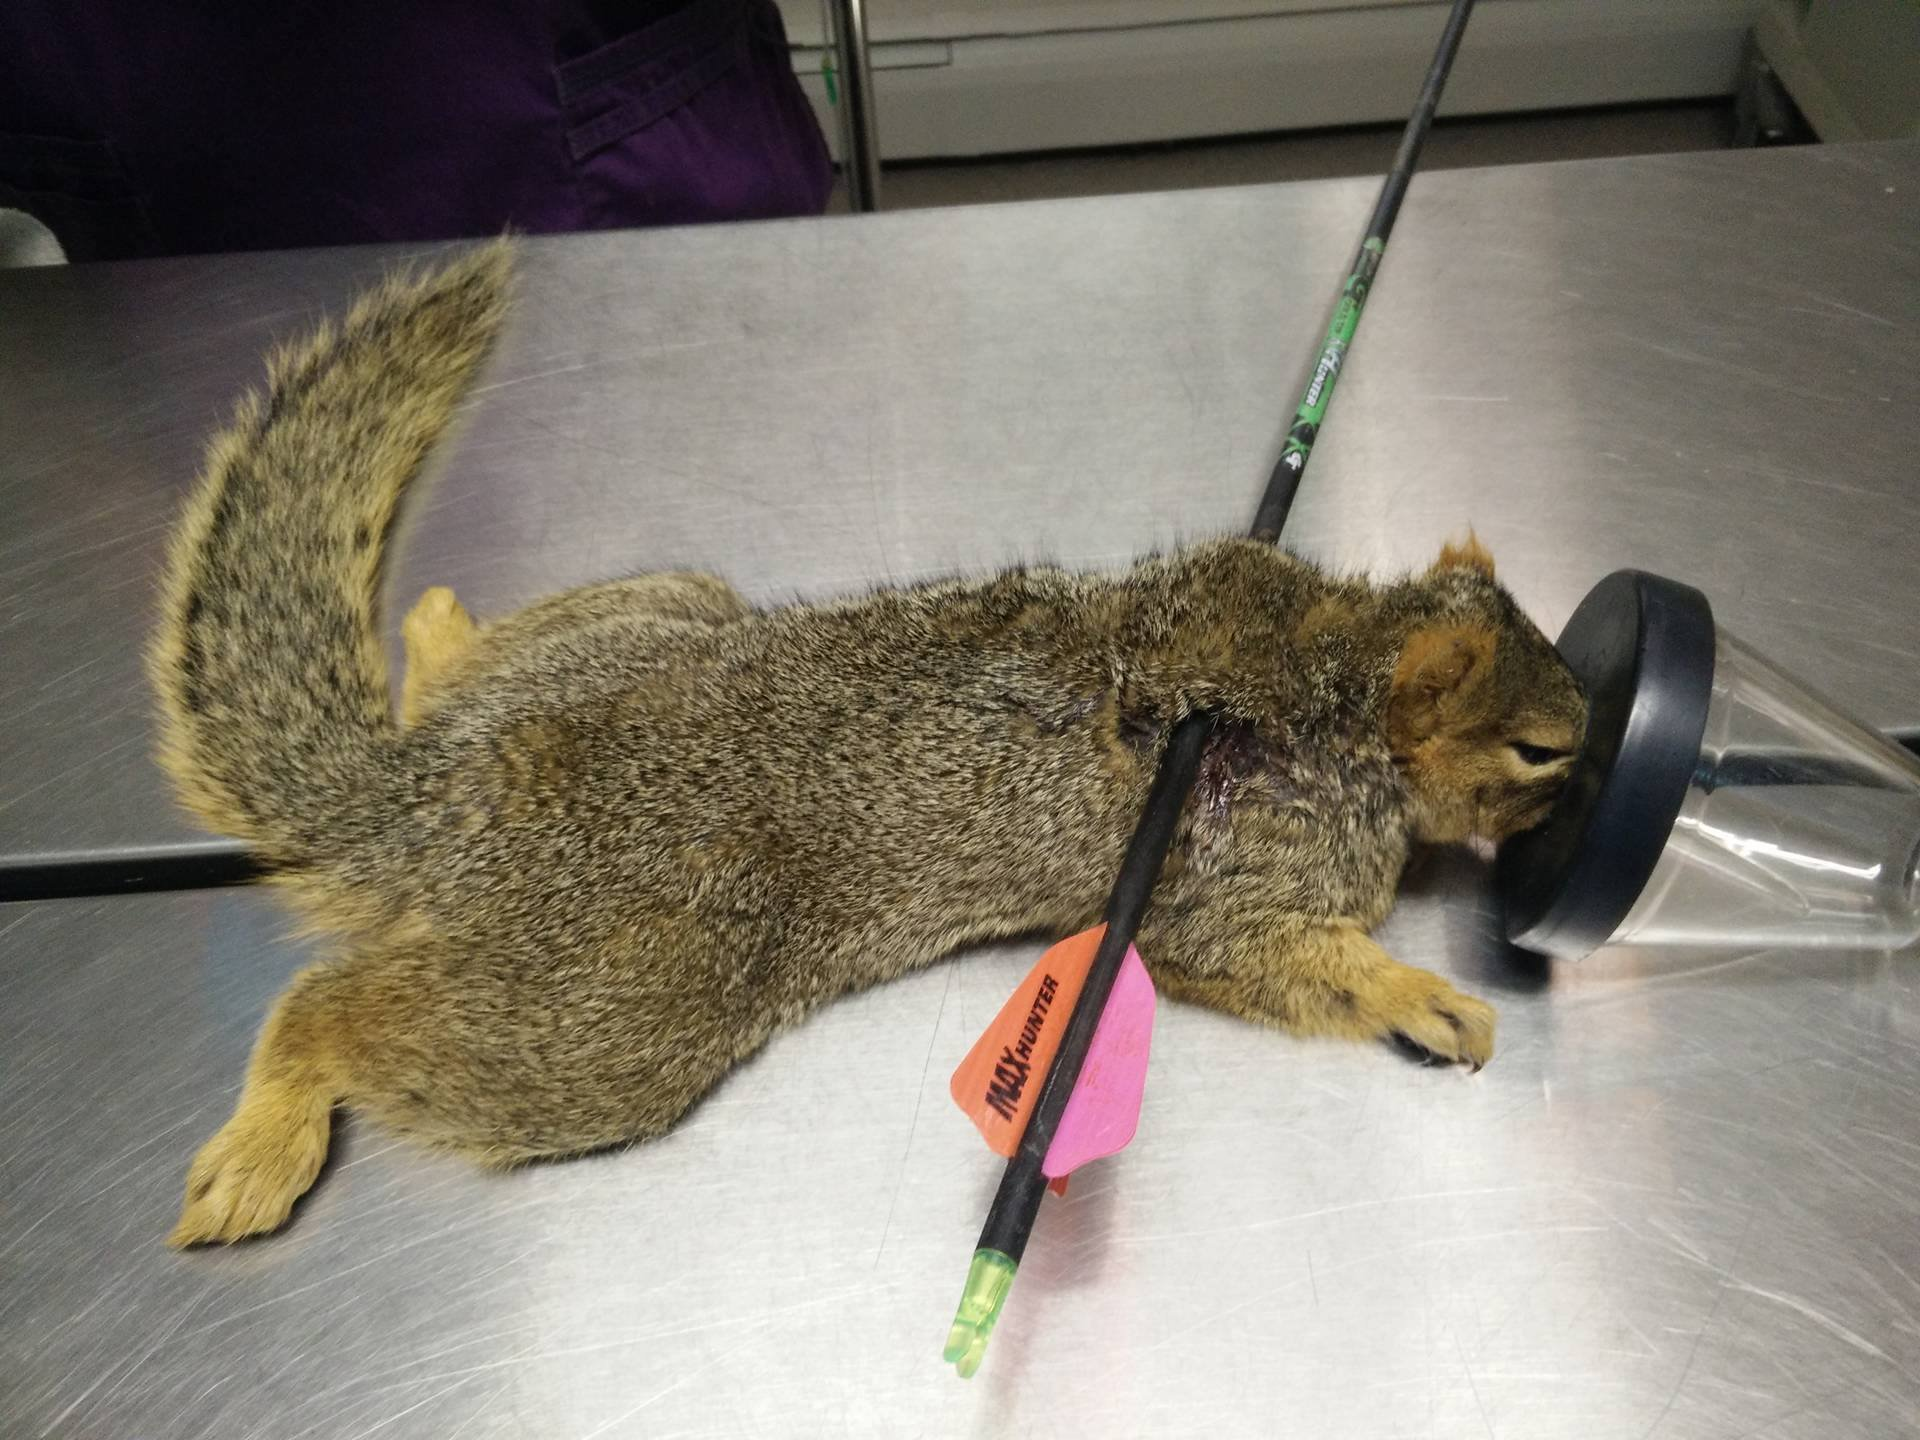 Photo from Animal Clinic of Woodland Park shows squirrel impaled by arrow.